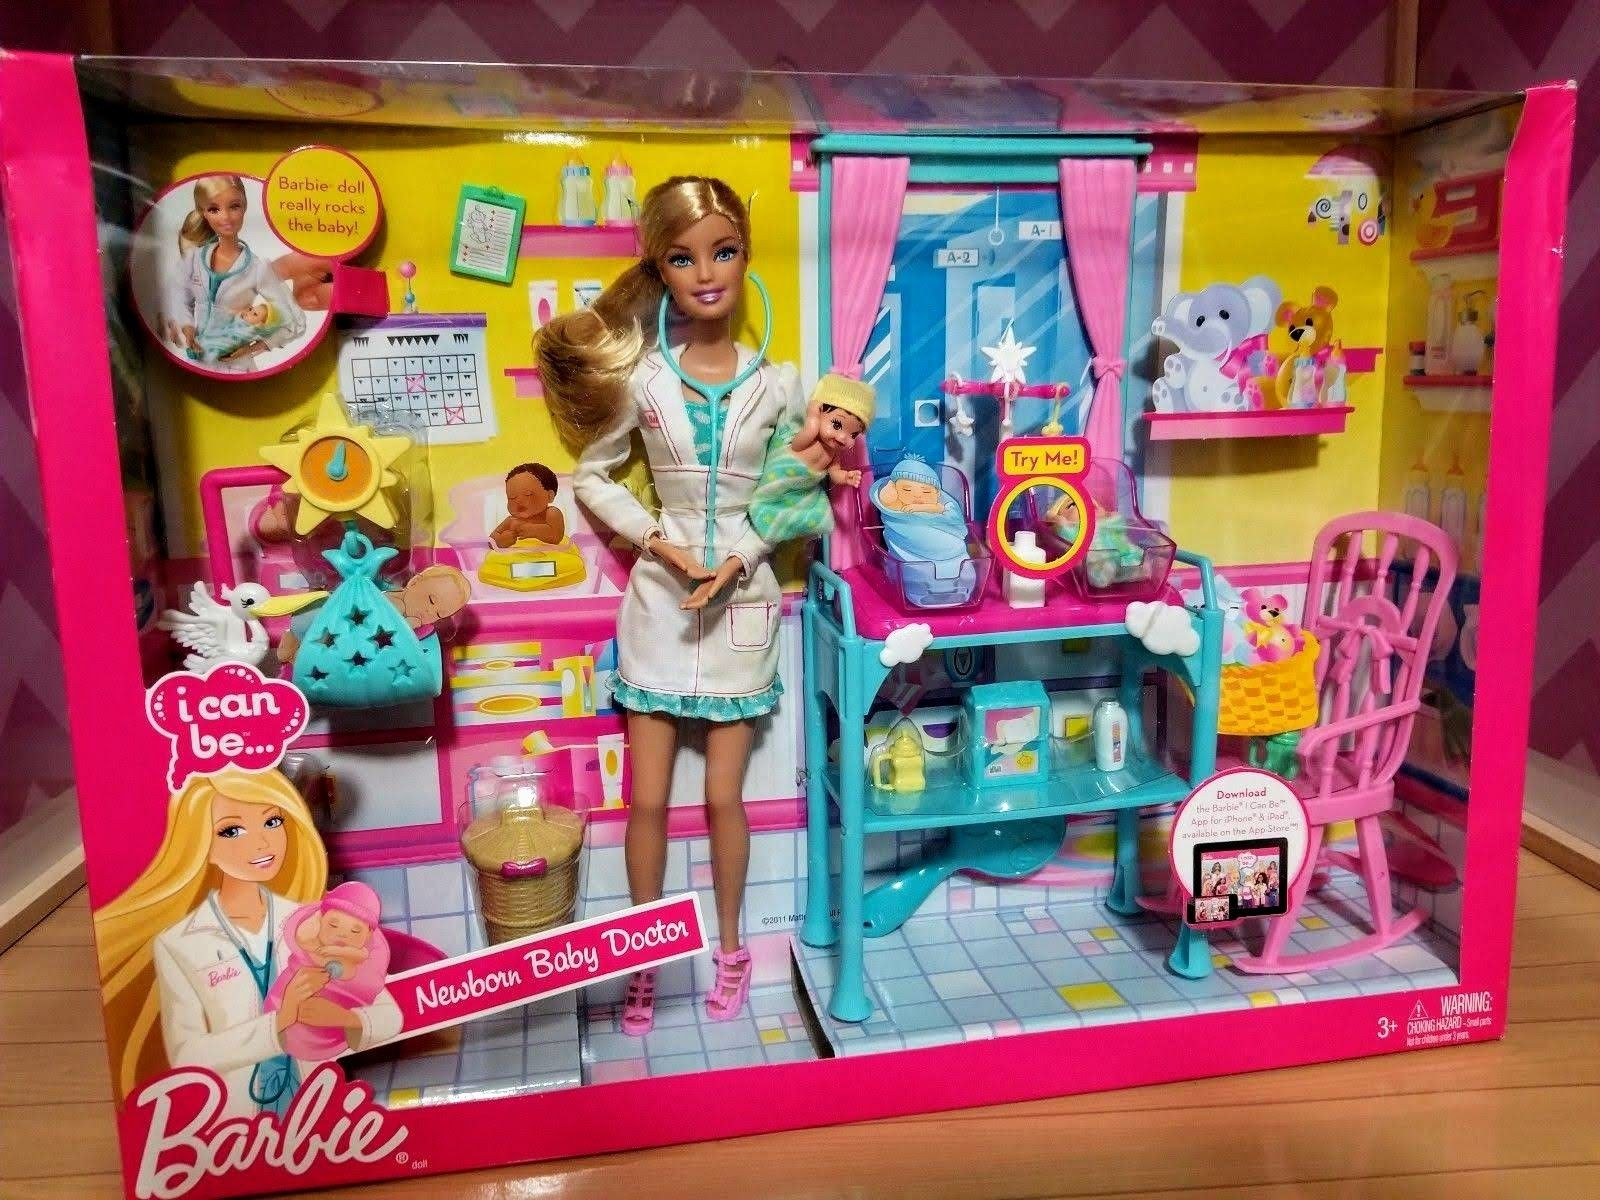 Newborn Baby Doctor Barbie Play Set With Images Baby Doctor